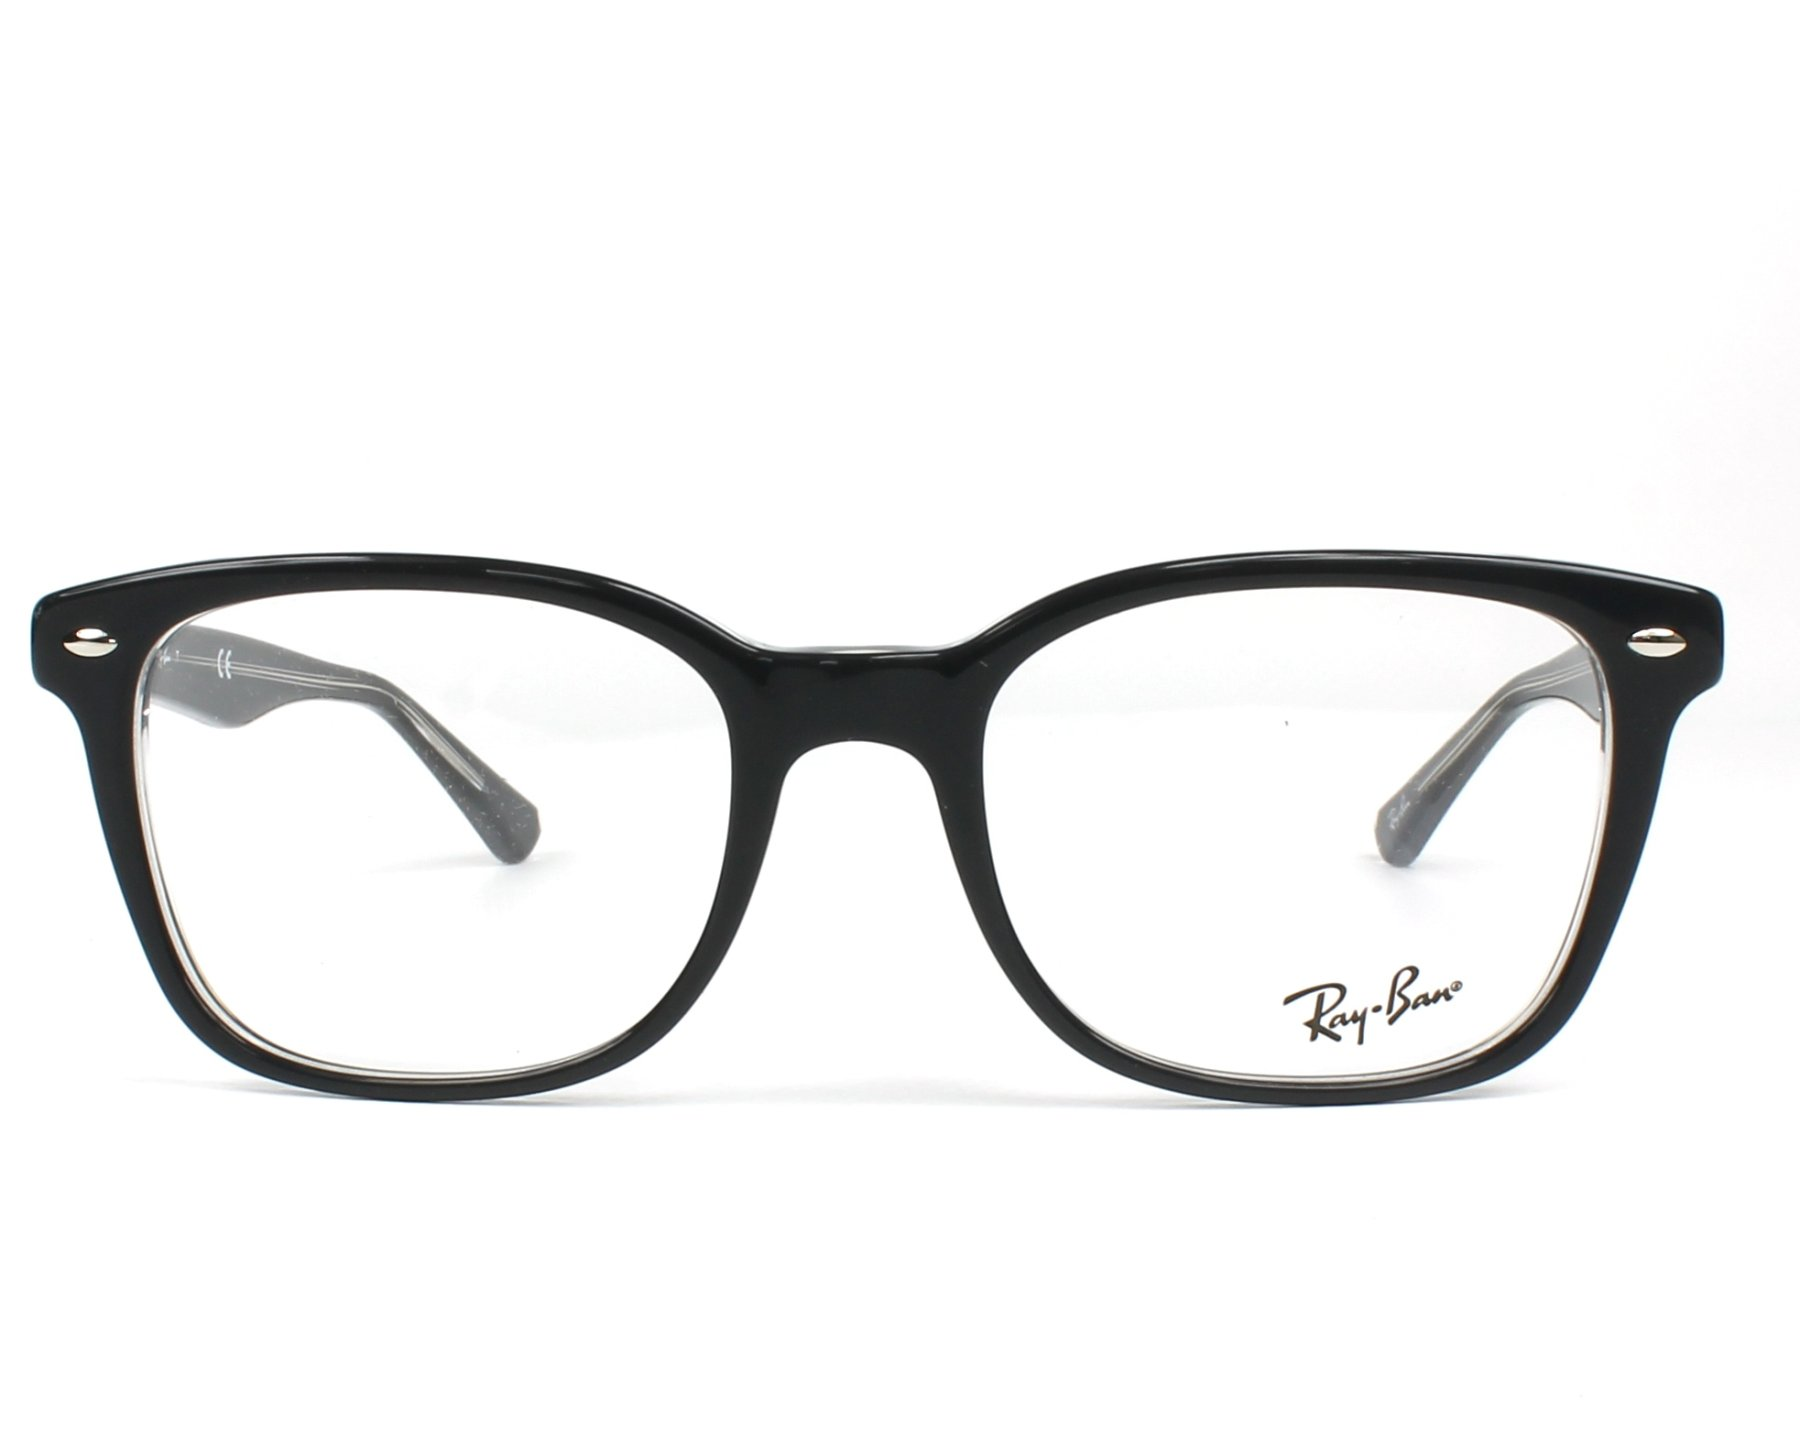 c957a5efc5 eyeglasses Ray-Ban RX-5285 5764 53-19 Grey Crystal front view